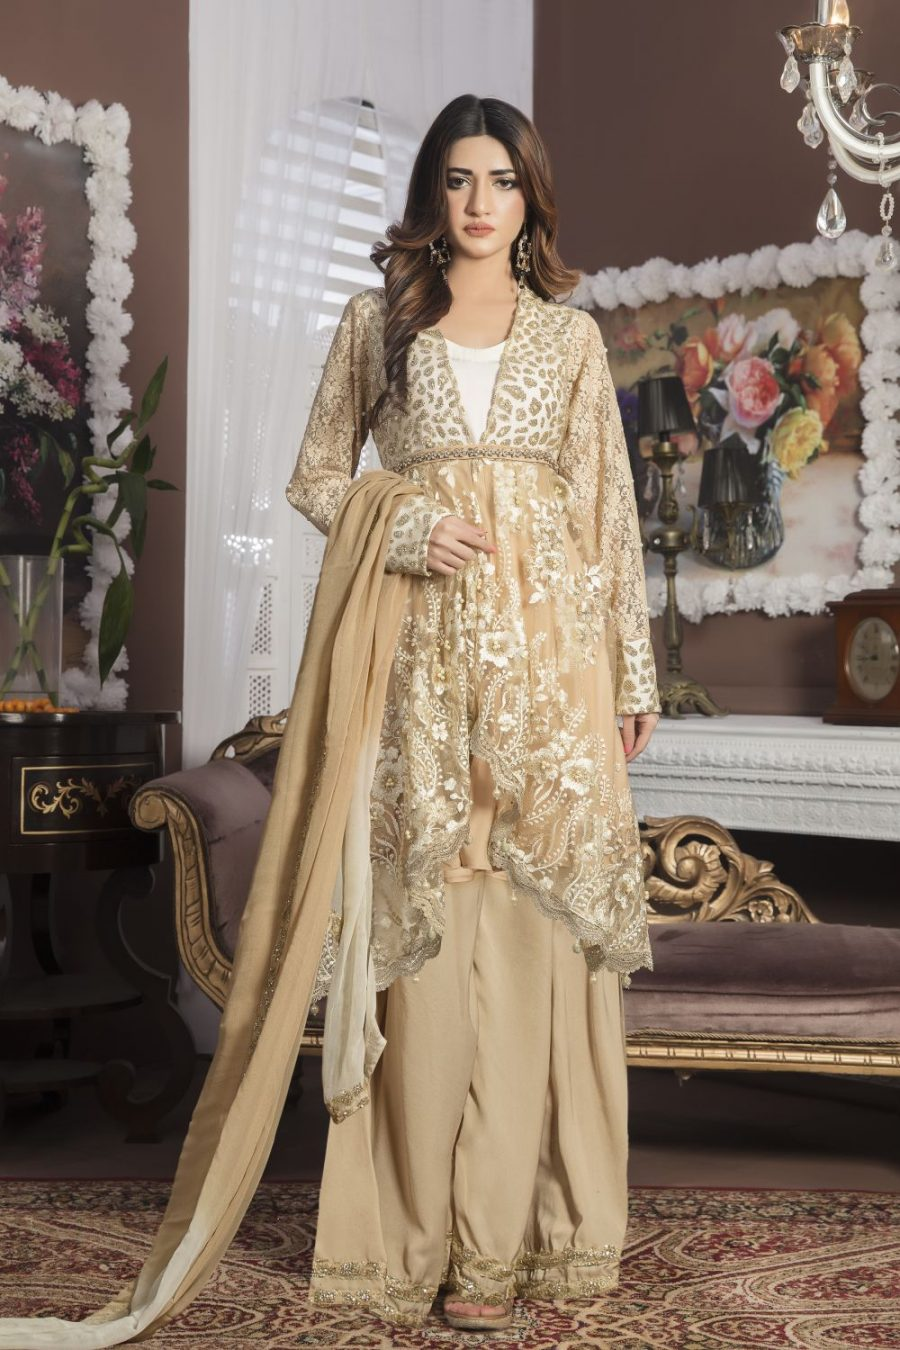 Buy Designer Pakistani Party Dresses Online - exclusiveinn.com